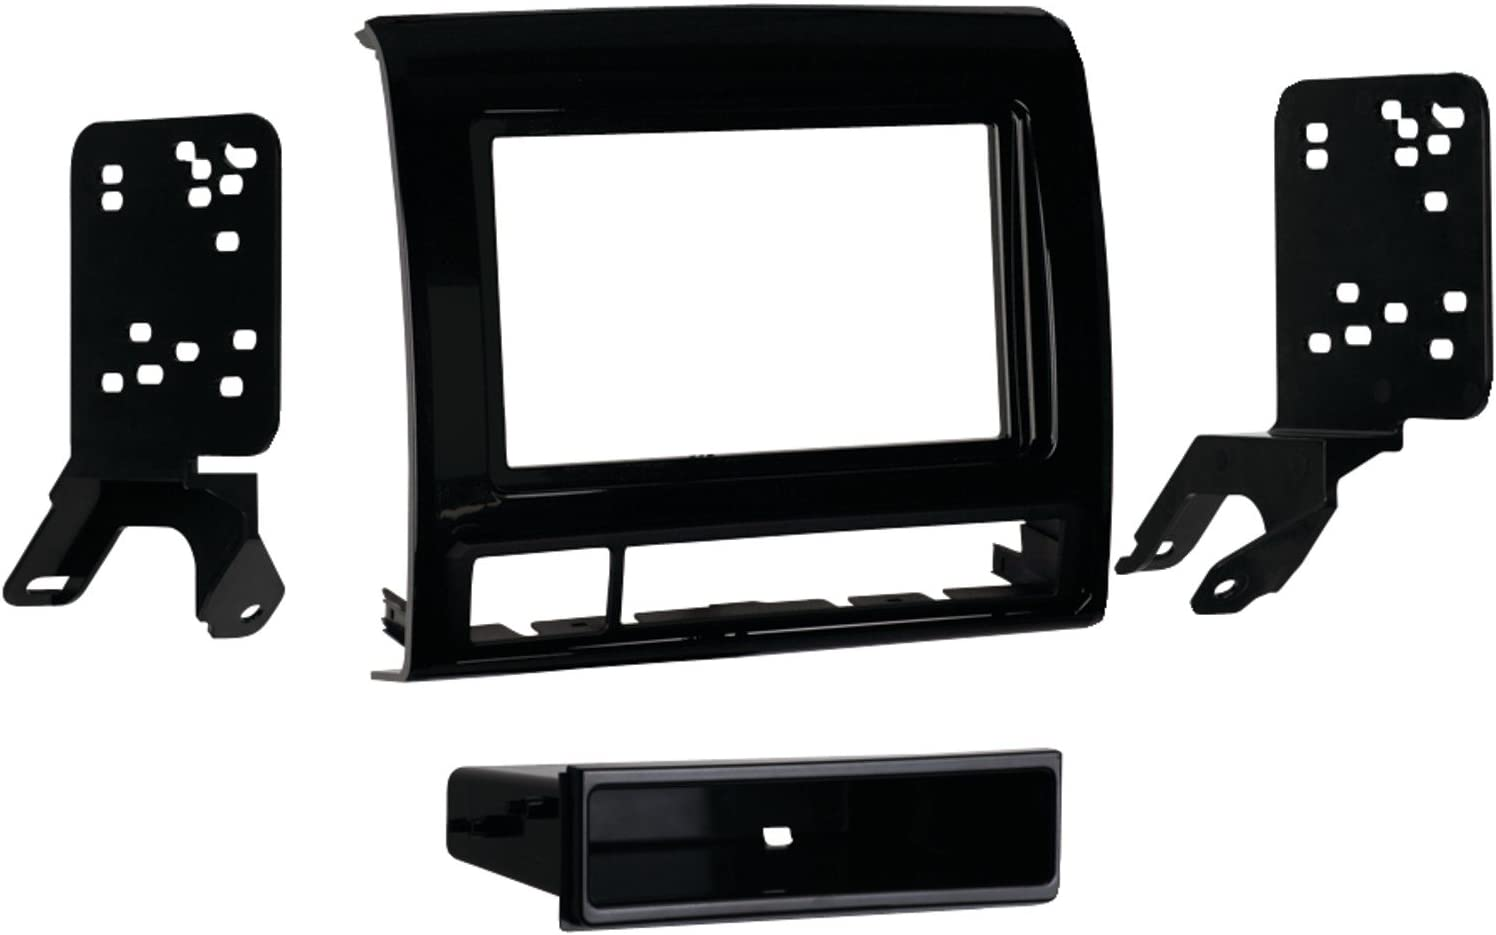 METRA 95-8235CHG INSTALLATION DOUBLE DIN KIT FOR 2012-UP TOYOTA TACOMA VEHICLES